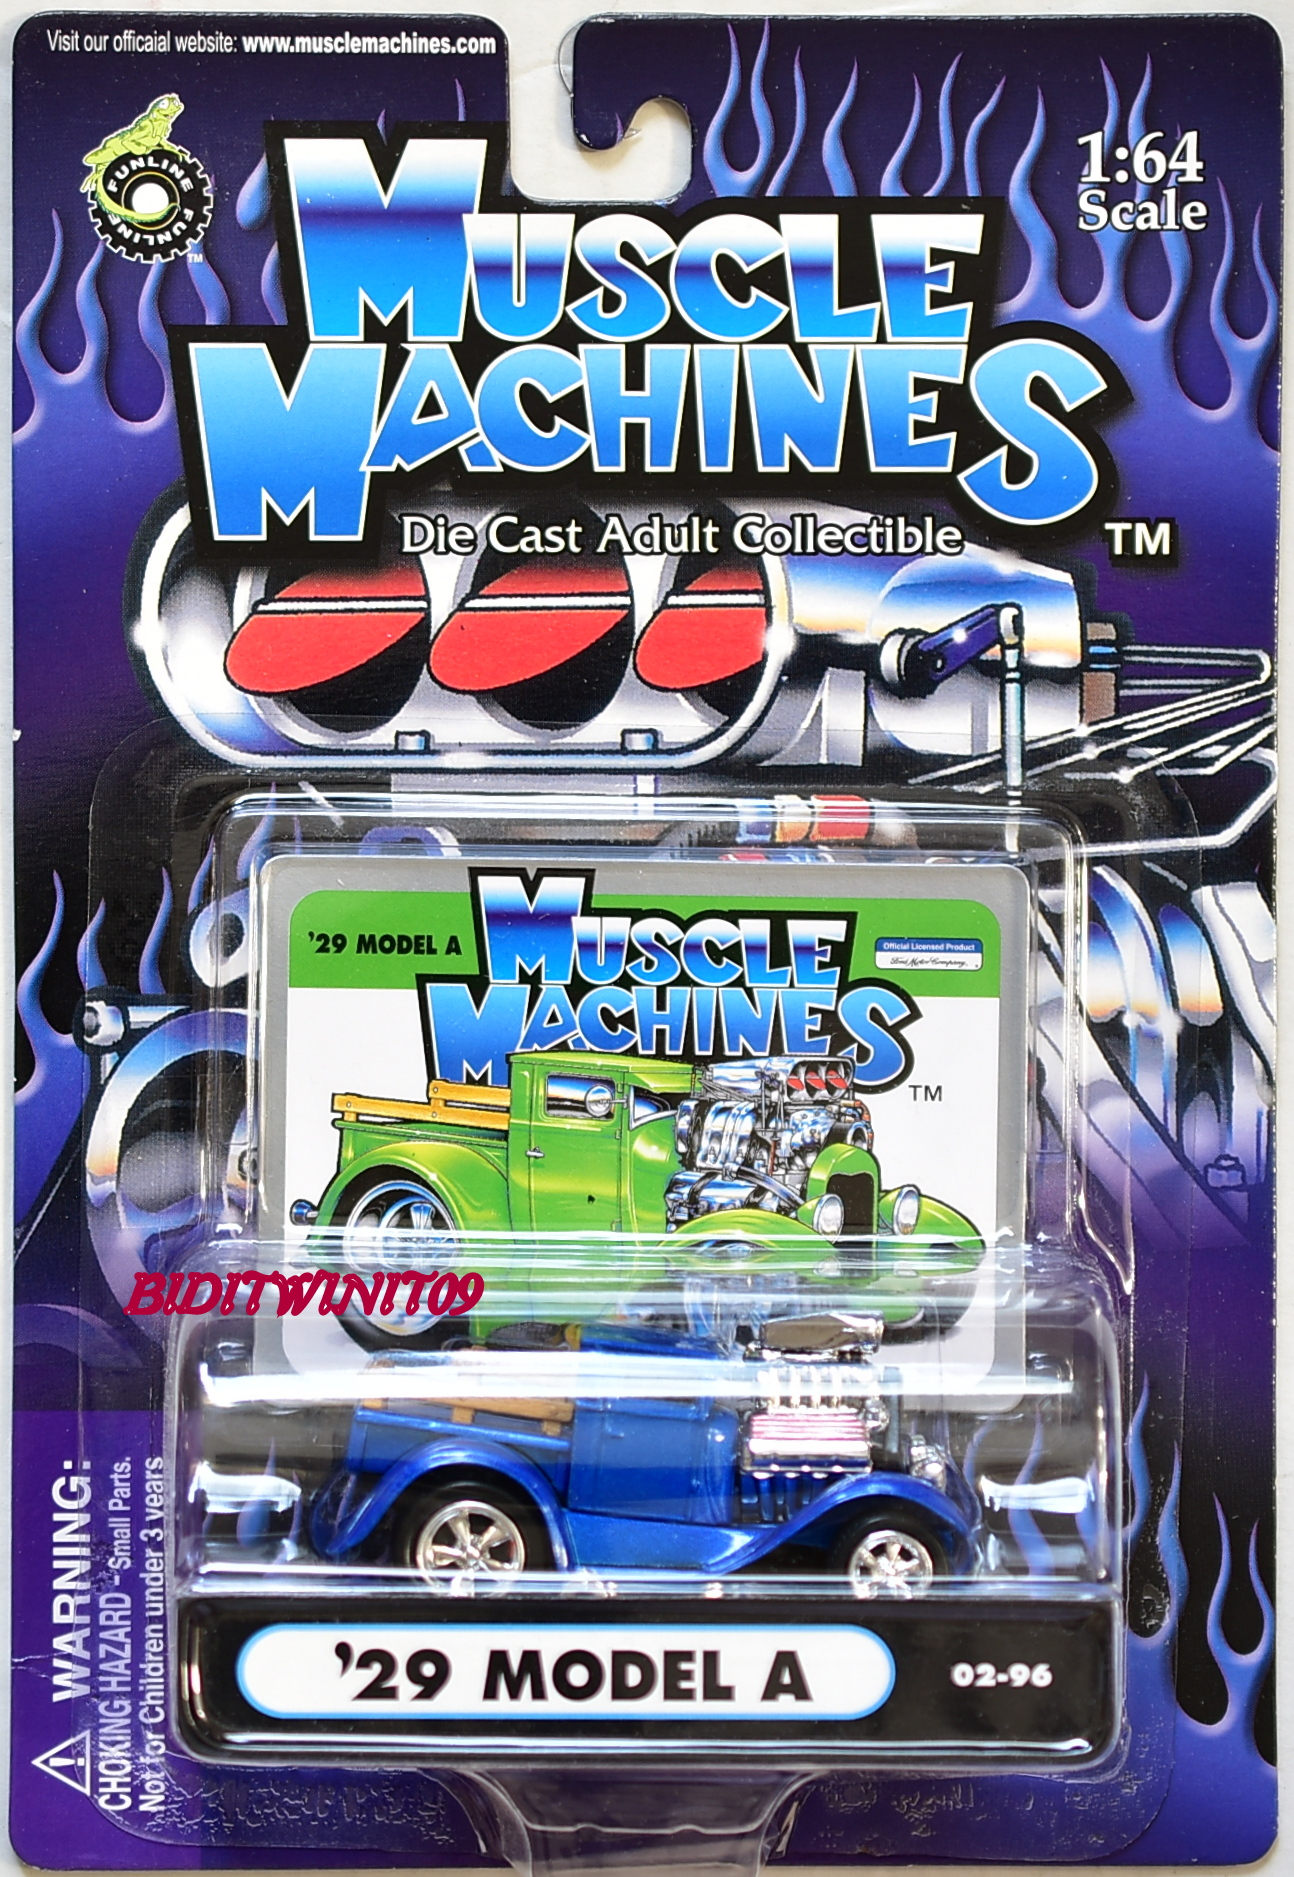 MUSCLE MACHINES '29 MODEL A 02-96 BLUE 1:64 SCALE